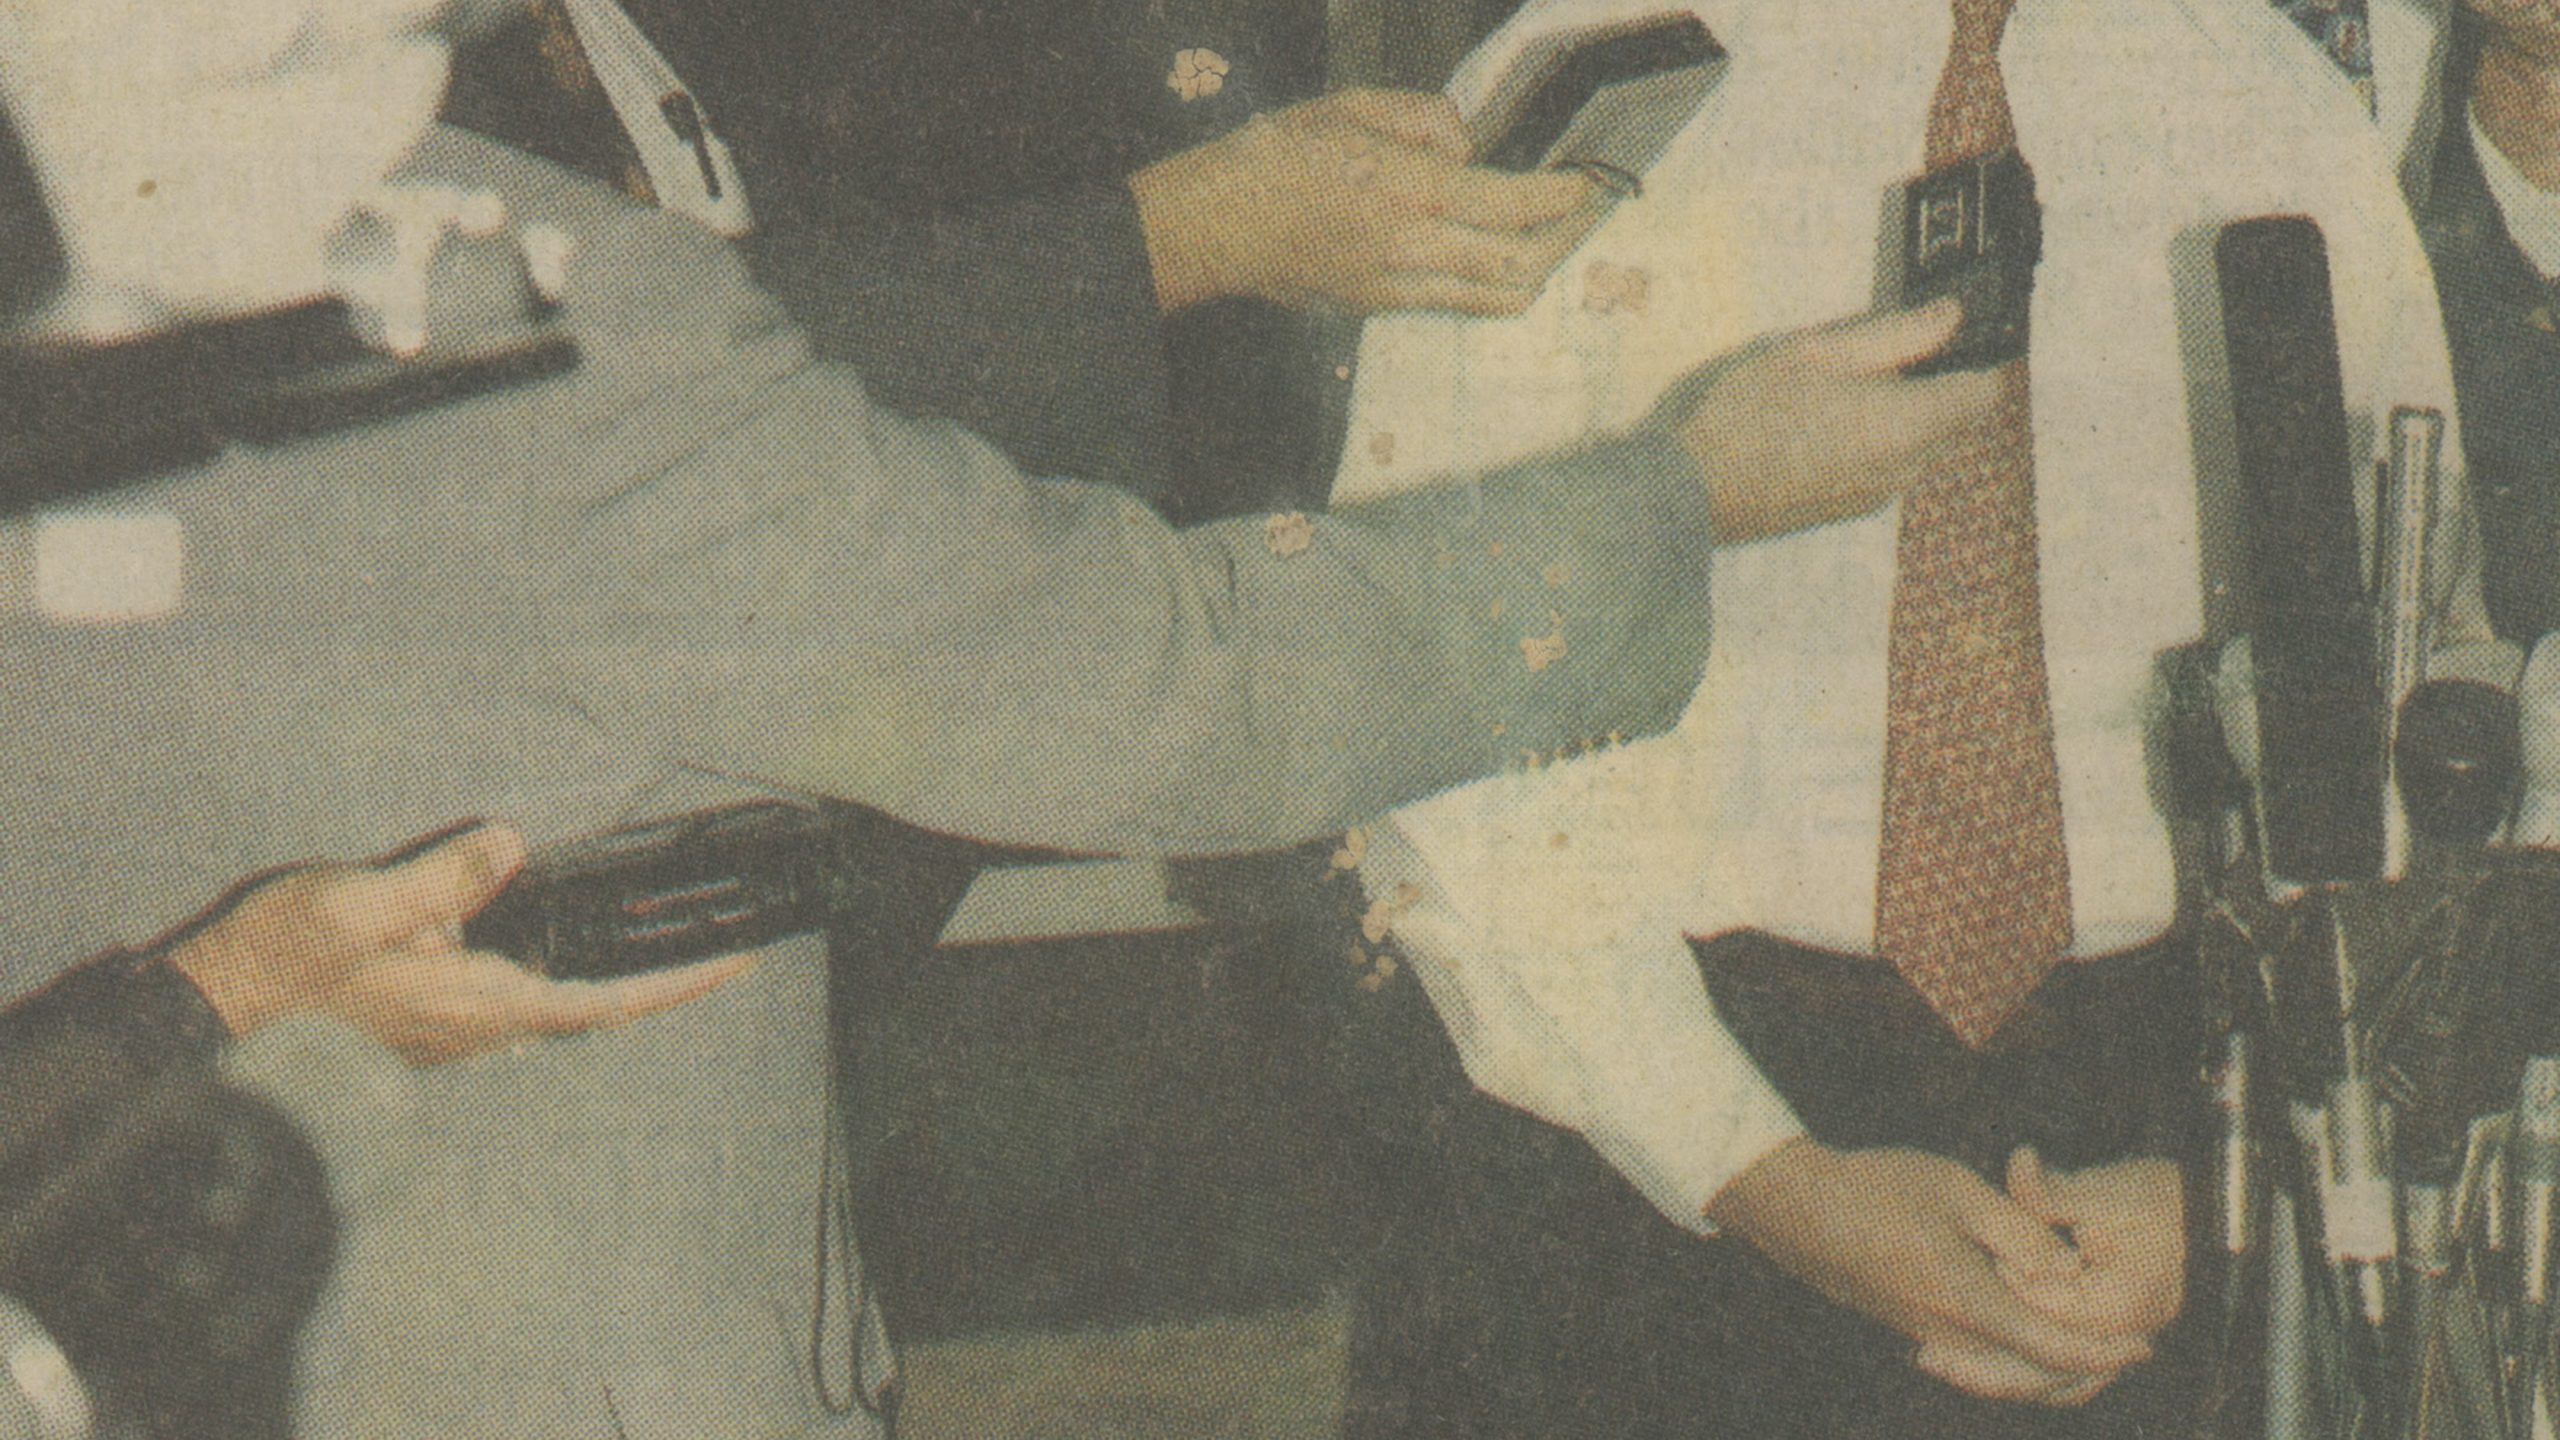 A video still of Untitled (Saturday, October 16, 1993) shows a weathered newspaper clipping of a figure dressed in a white shirt with red tie standing before microphones. Arms reach out from the left side of the shot with tape recorders and additional microphones preparing to record the speaker's voice.